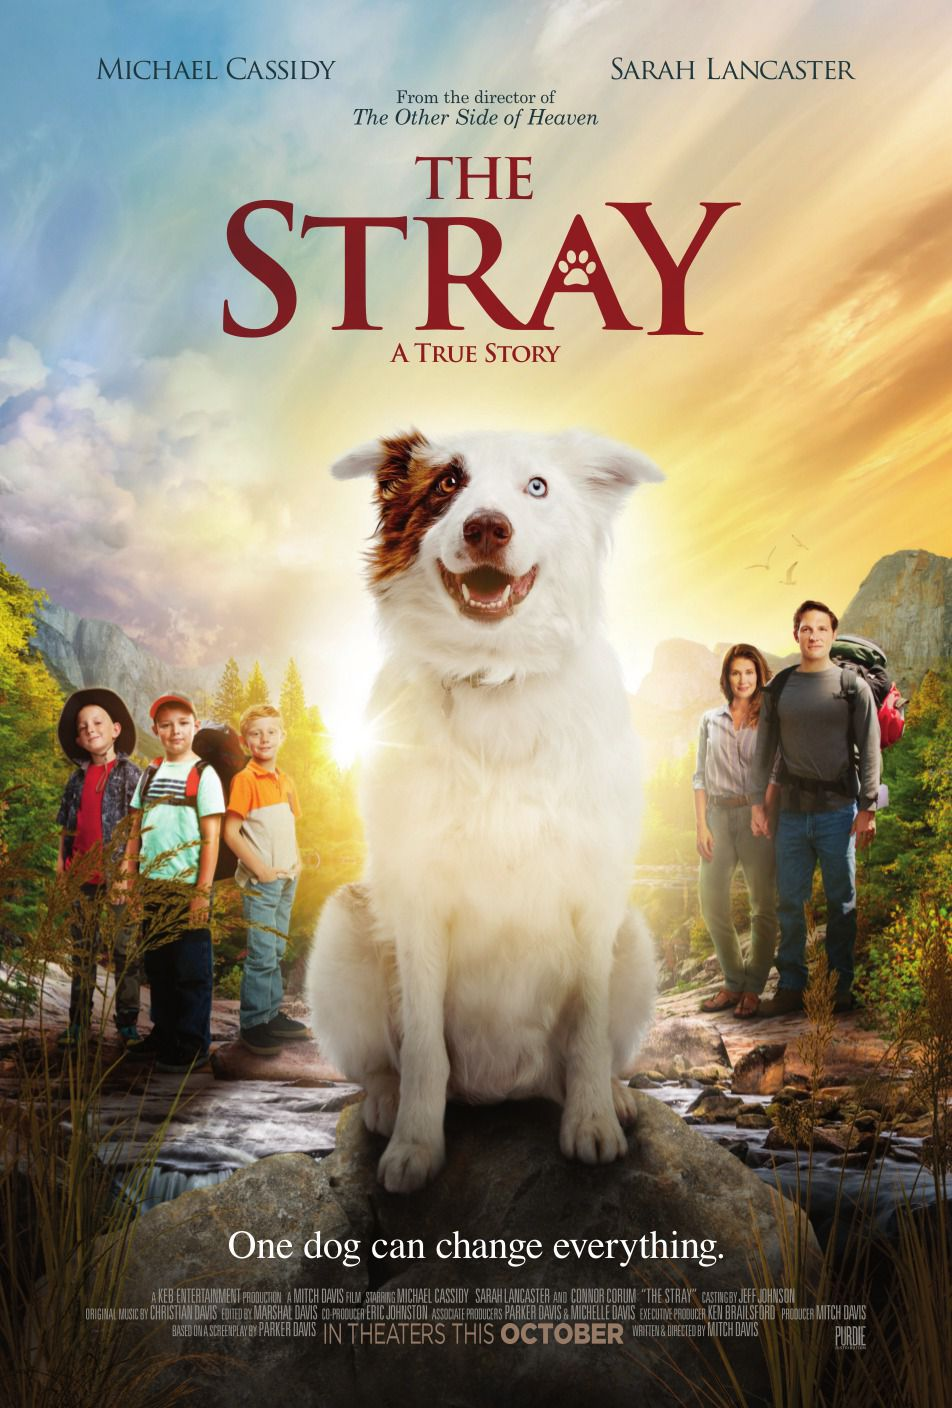 The Stray - film poster - Michael Cassidy - Sarah Lancaster ... one Dog can change everything